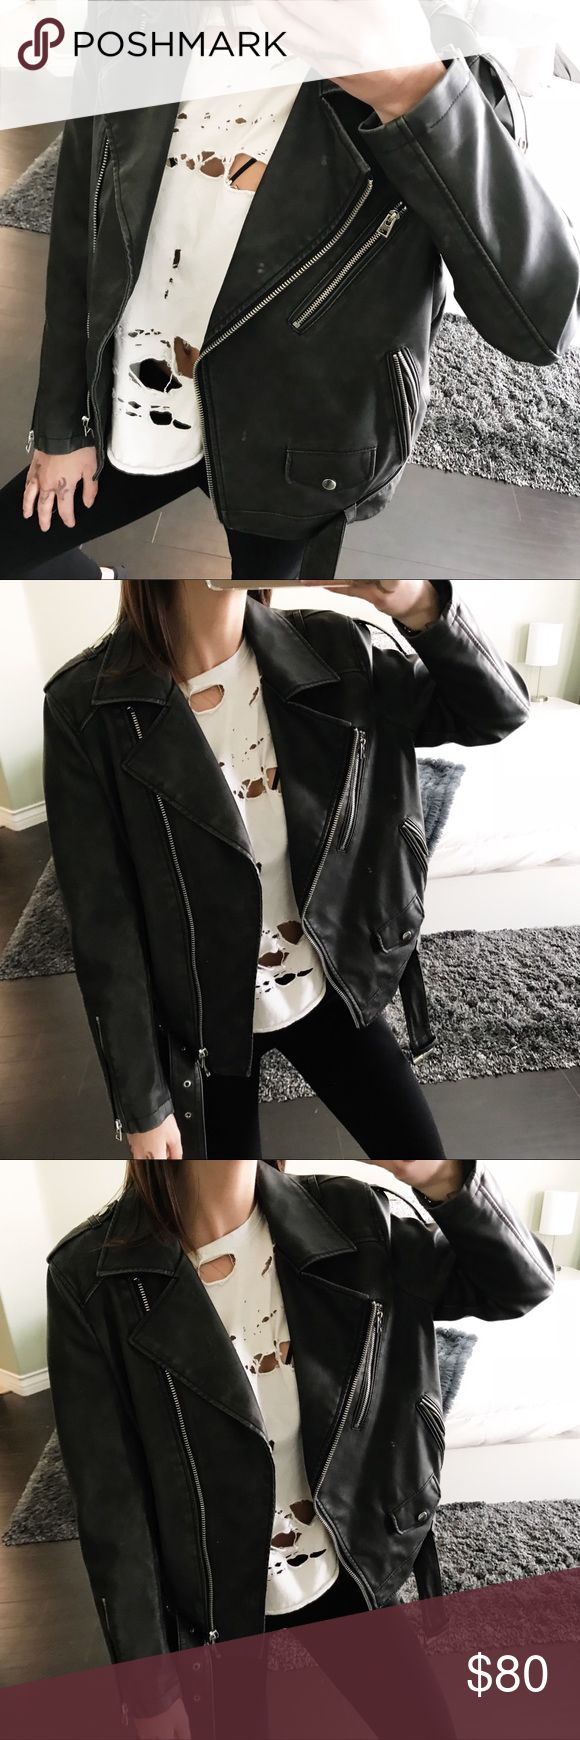 Black leather biker jacket Really sleek black leather biker jacket from top shop! I love this jacket so much perfect for fall and winter!! Jackets & Coats